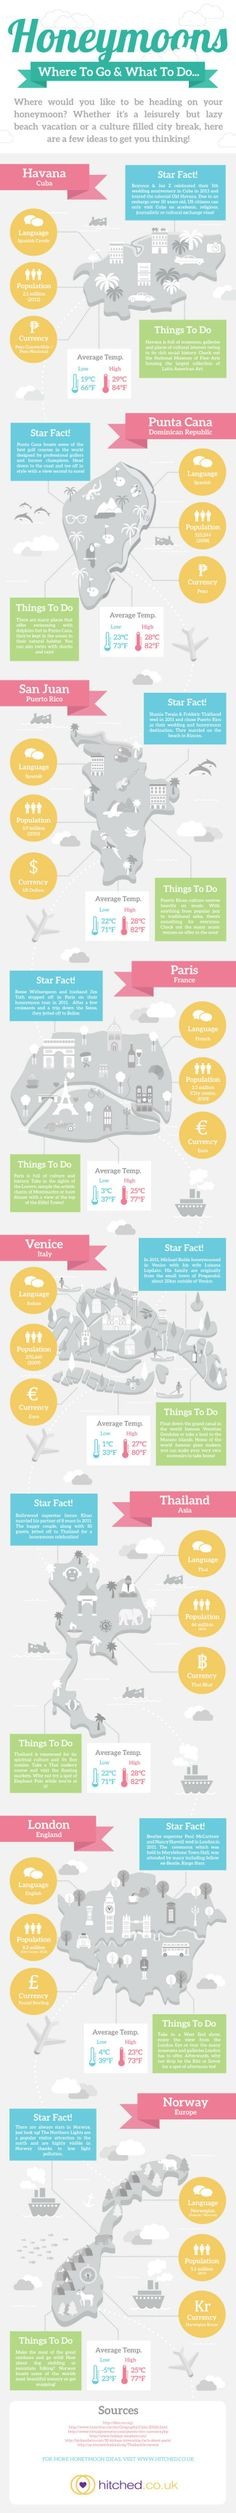 If you're unsure of where to go and what to do on for the most romantic holiday you'll ever take, then be inspired by the ideas featured on this honeymoon infographic.